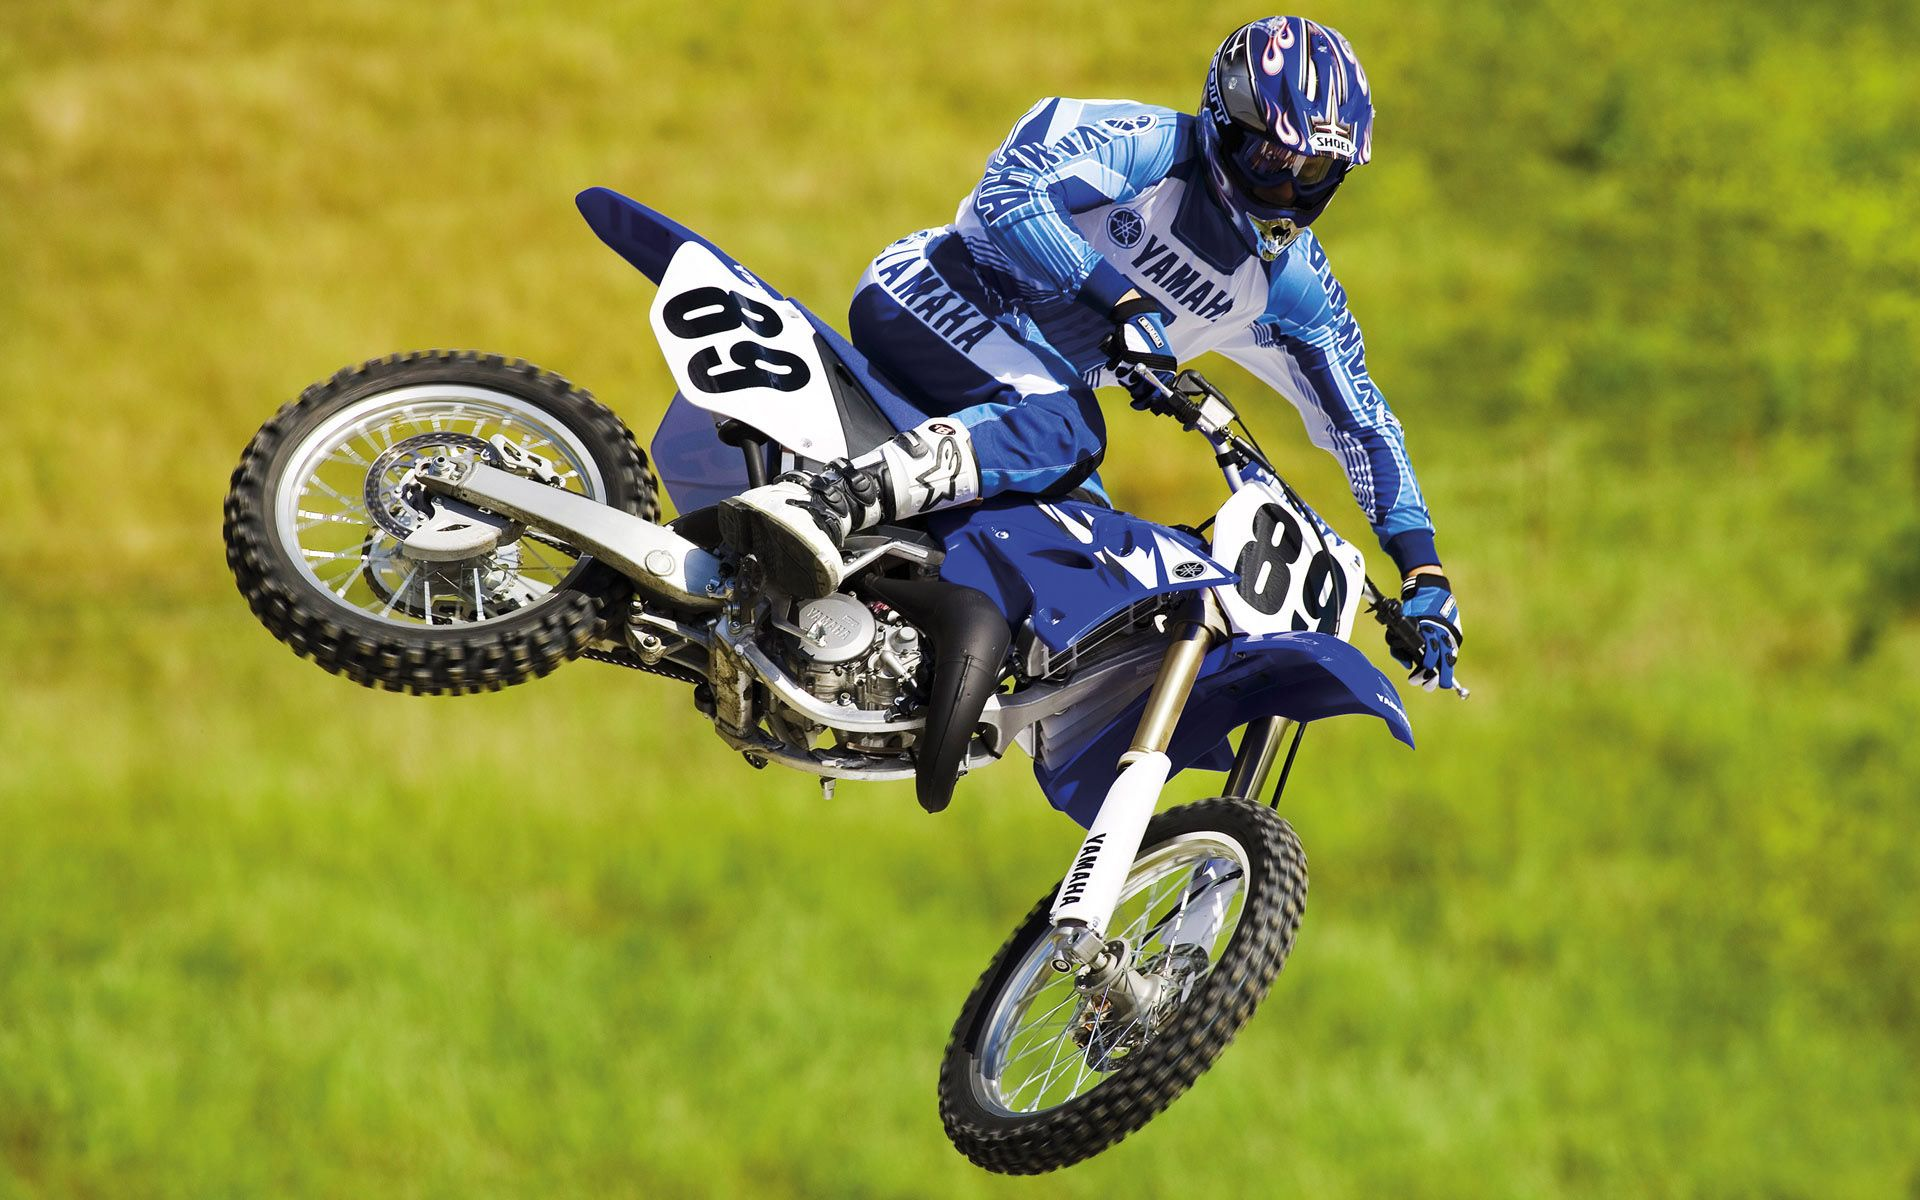 Yamaha Motocross Bike Wide Is An HD Wallpaper Posted In Motorcycles Category You Can Edit Original Image Download Free Covers For Facebook